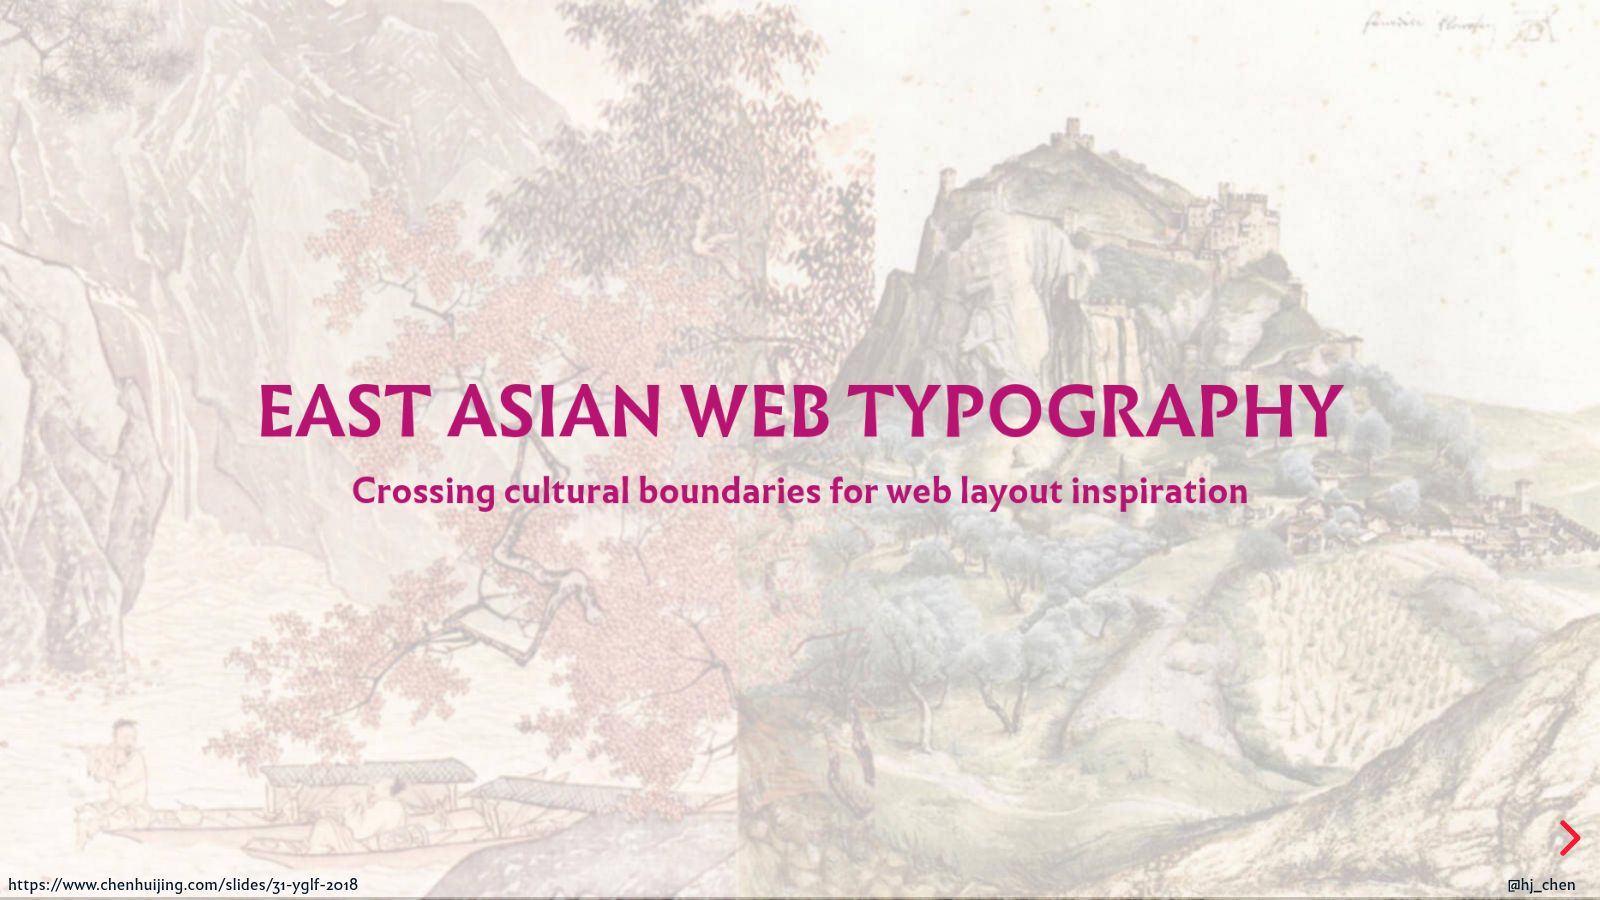 East Asian web typography: crossing cultural boundaries for web layout inspiration